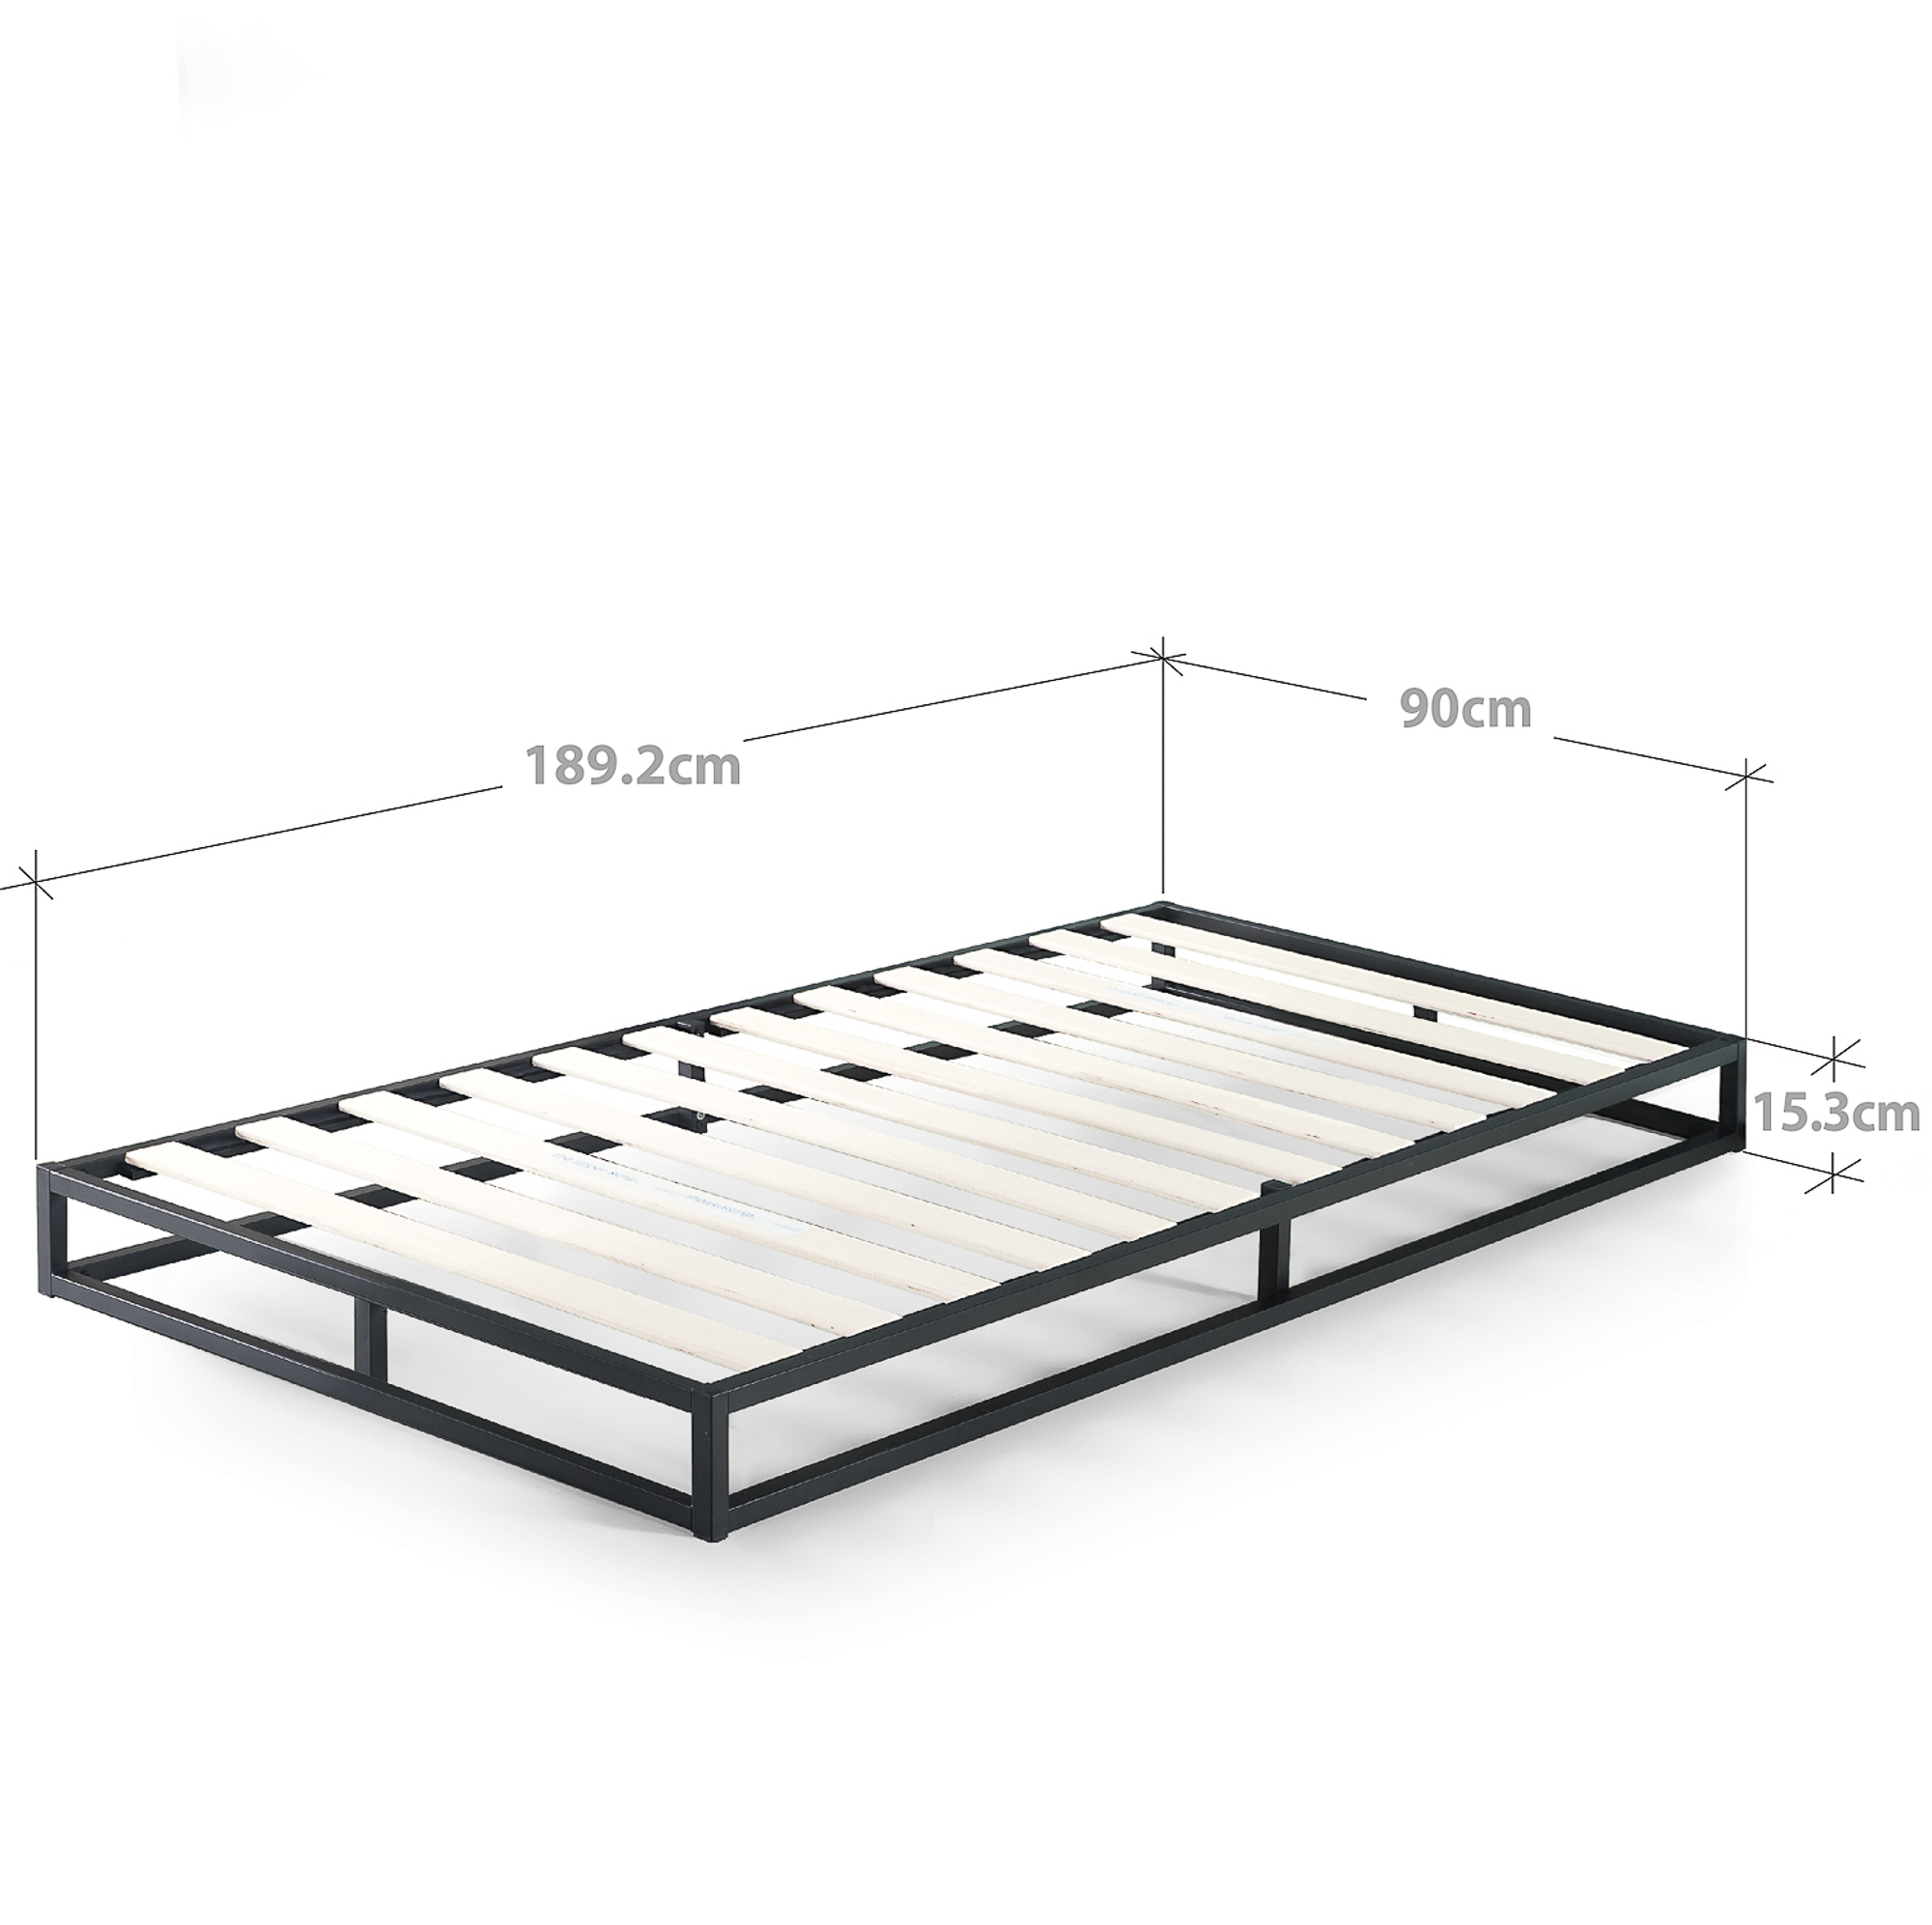 Zinus-Joesph-SINGLE-DOUBLE-QUEEN-KING-Metal-Low-Bed-Base-Mattress-Frame-Timber thumbnail 15